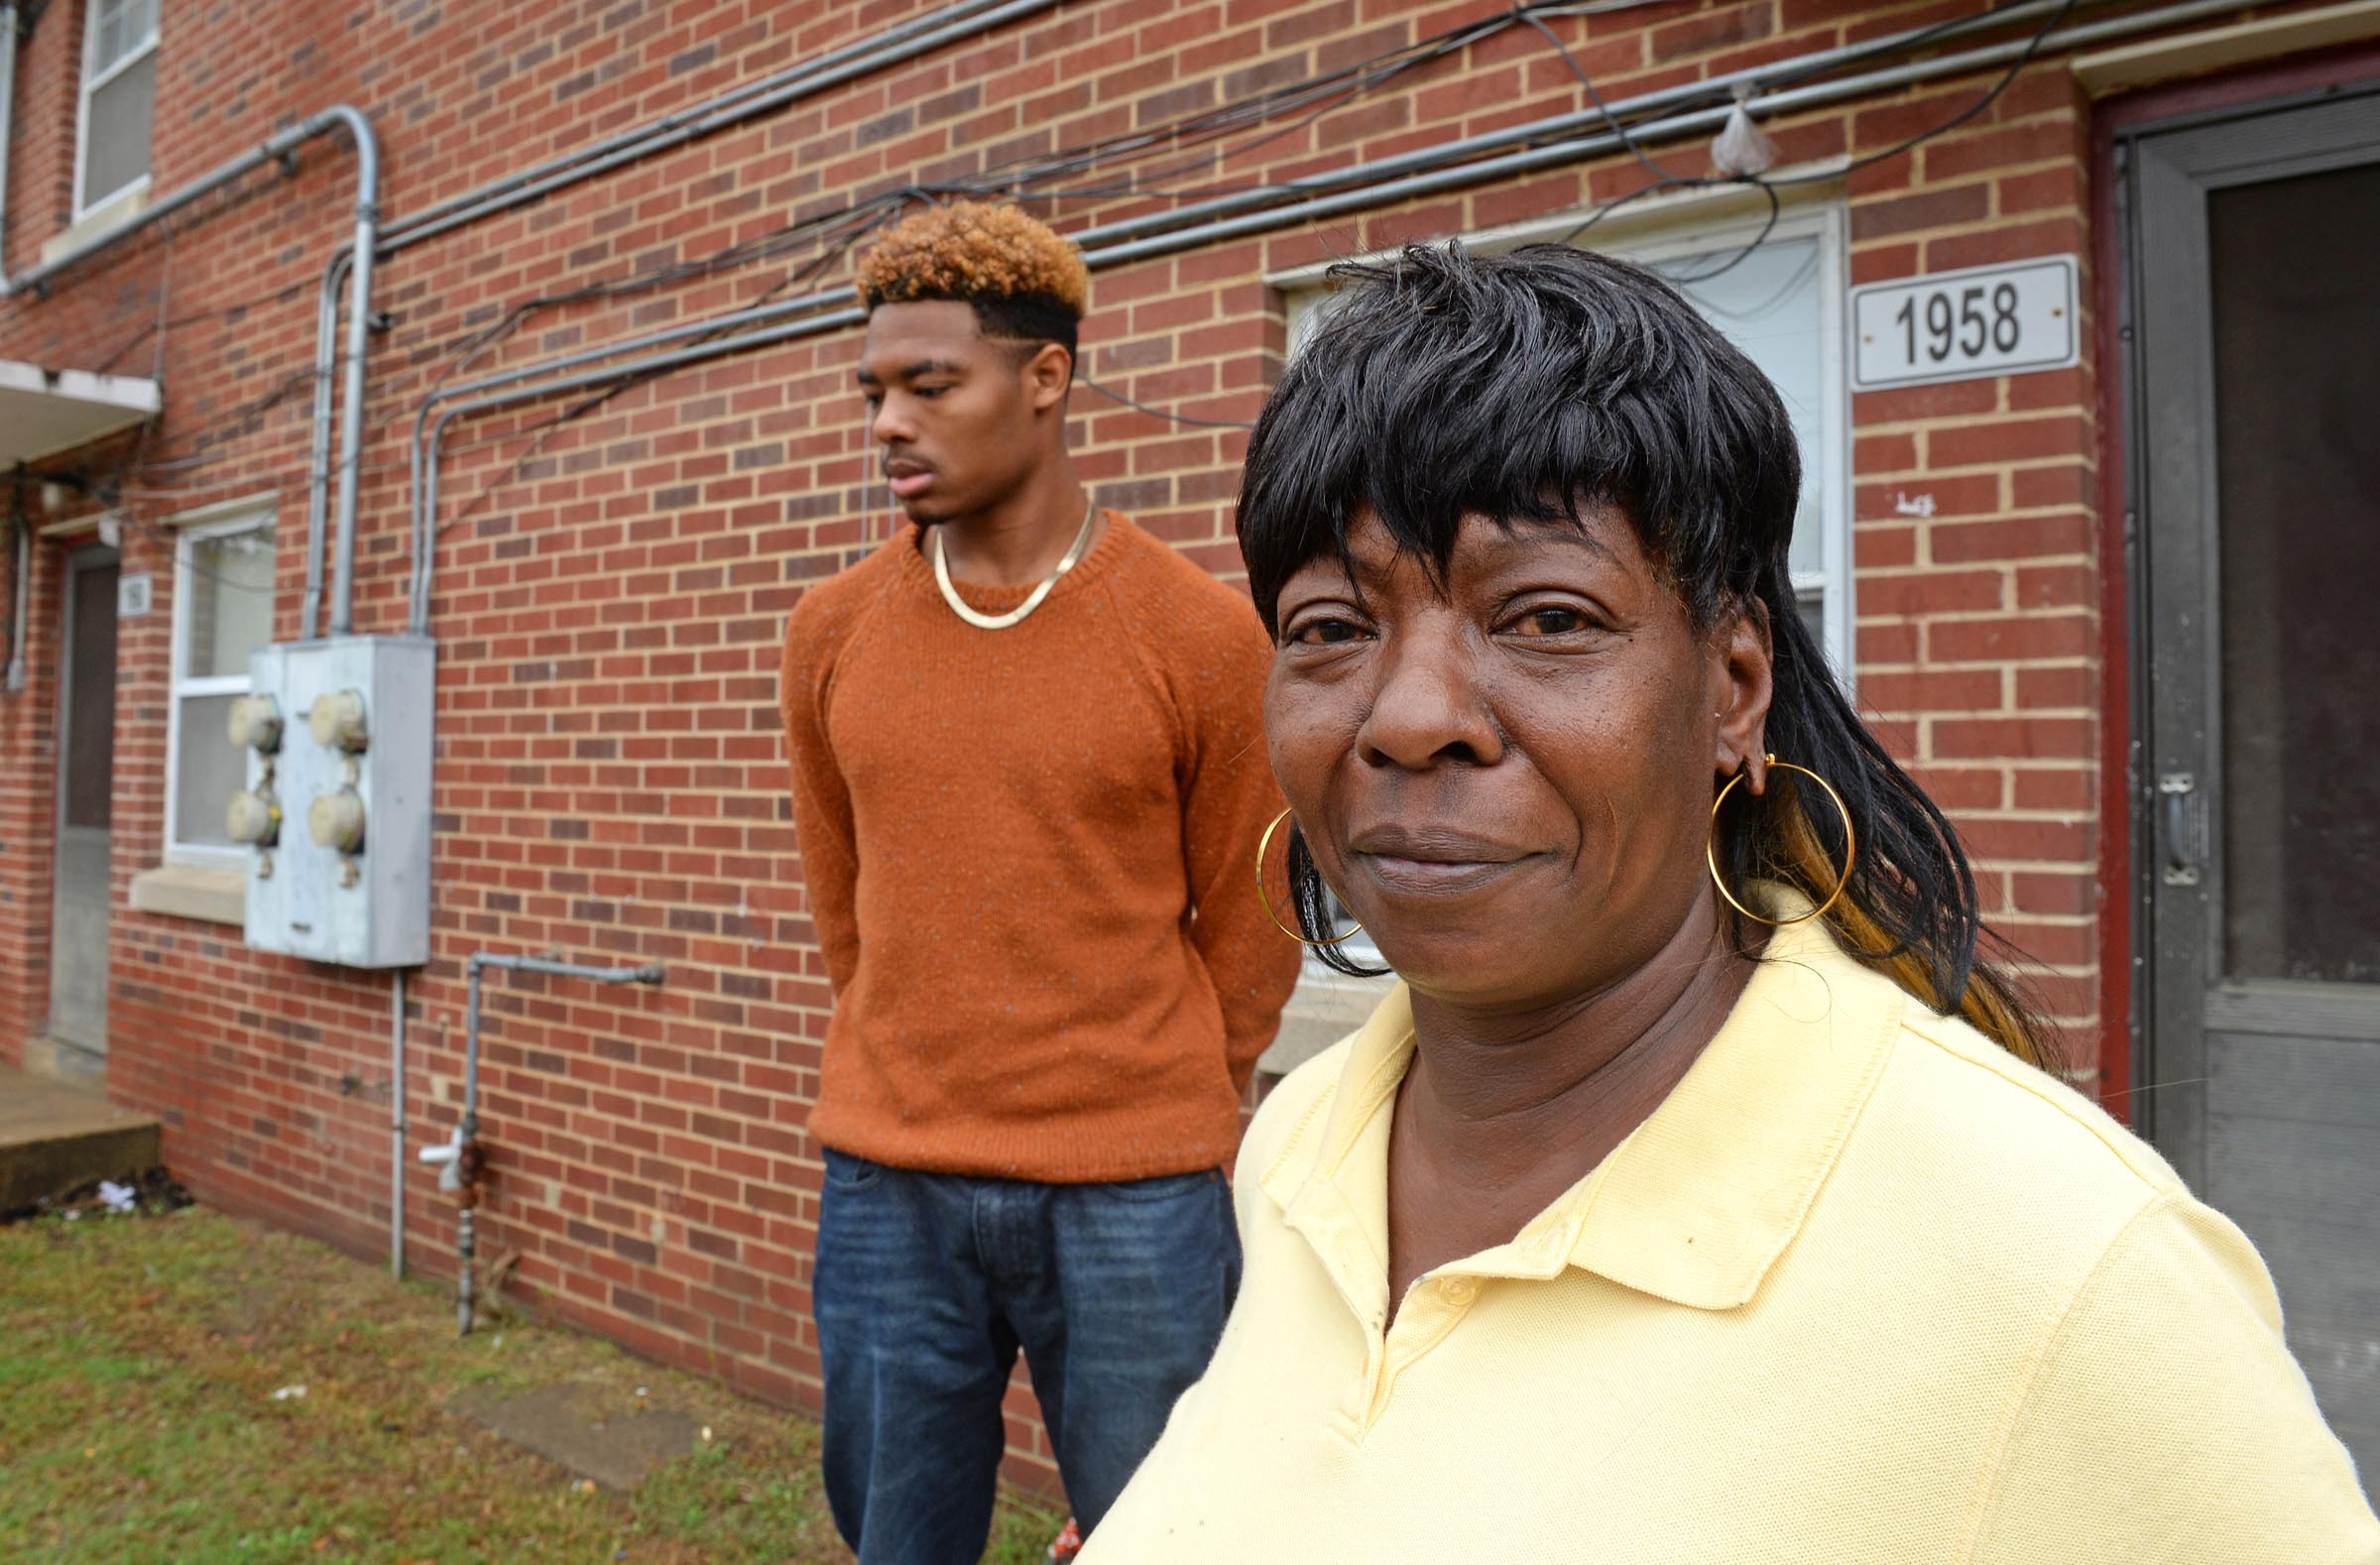 Dominique Crutchfield, 18, stands with his grandmother, Darlene Crutchfield outside of her apartment in Mosby Court. Dominique's father, who was Darlene's son, became the sixth homicide victim in the public housing project this year. - SCOTT ELMQUIST